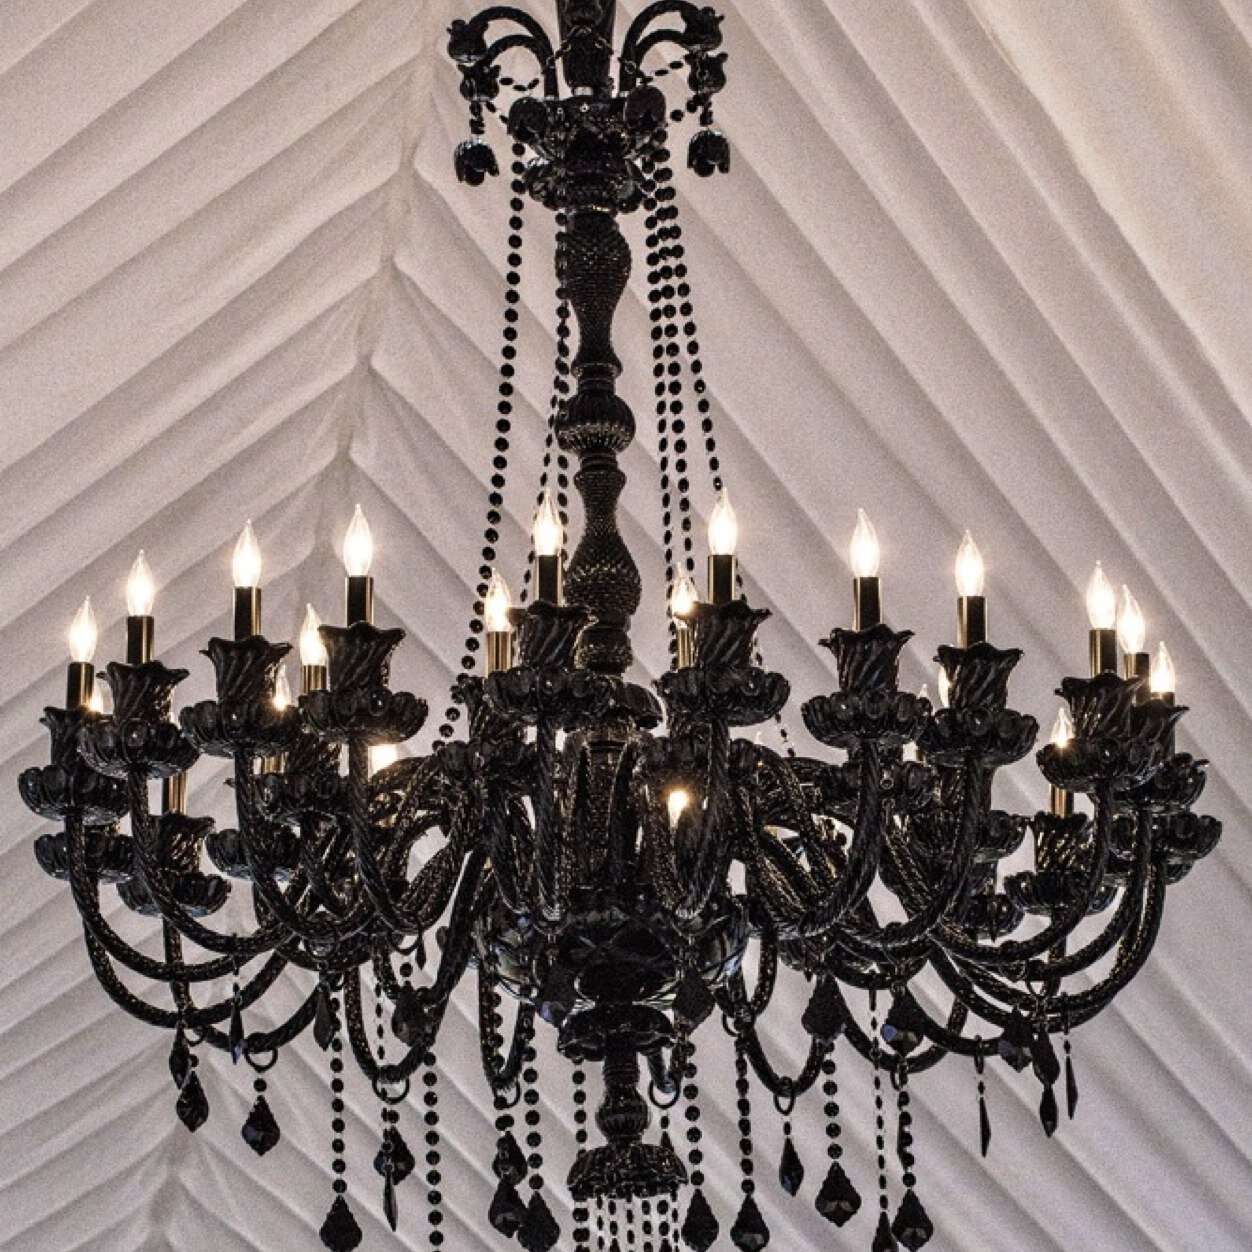 Black-Chandelier.com (@BlackChandelier)